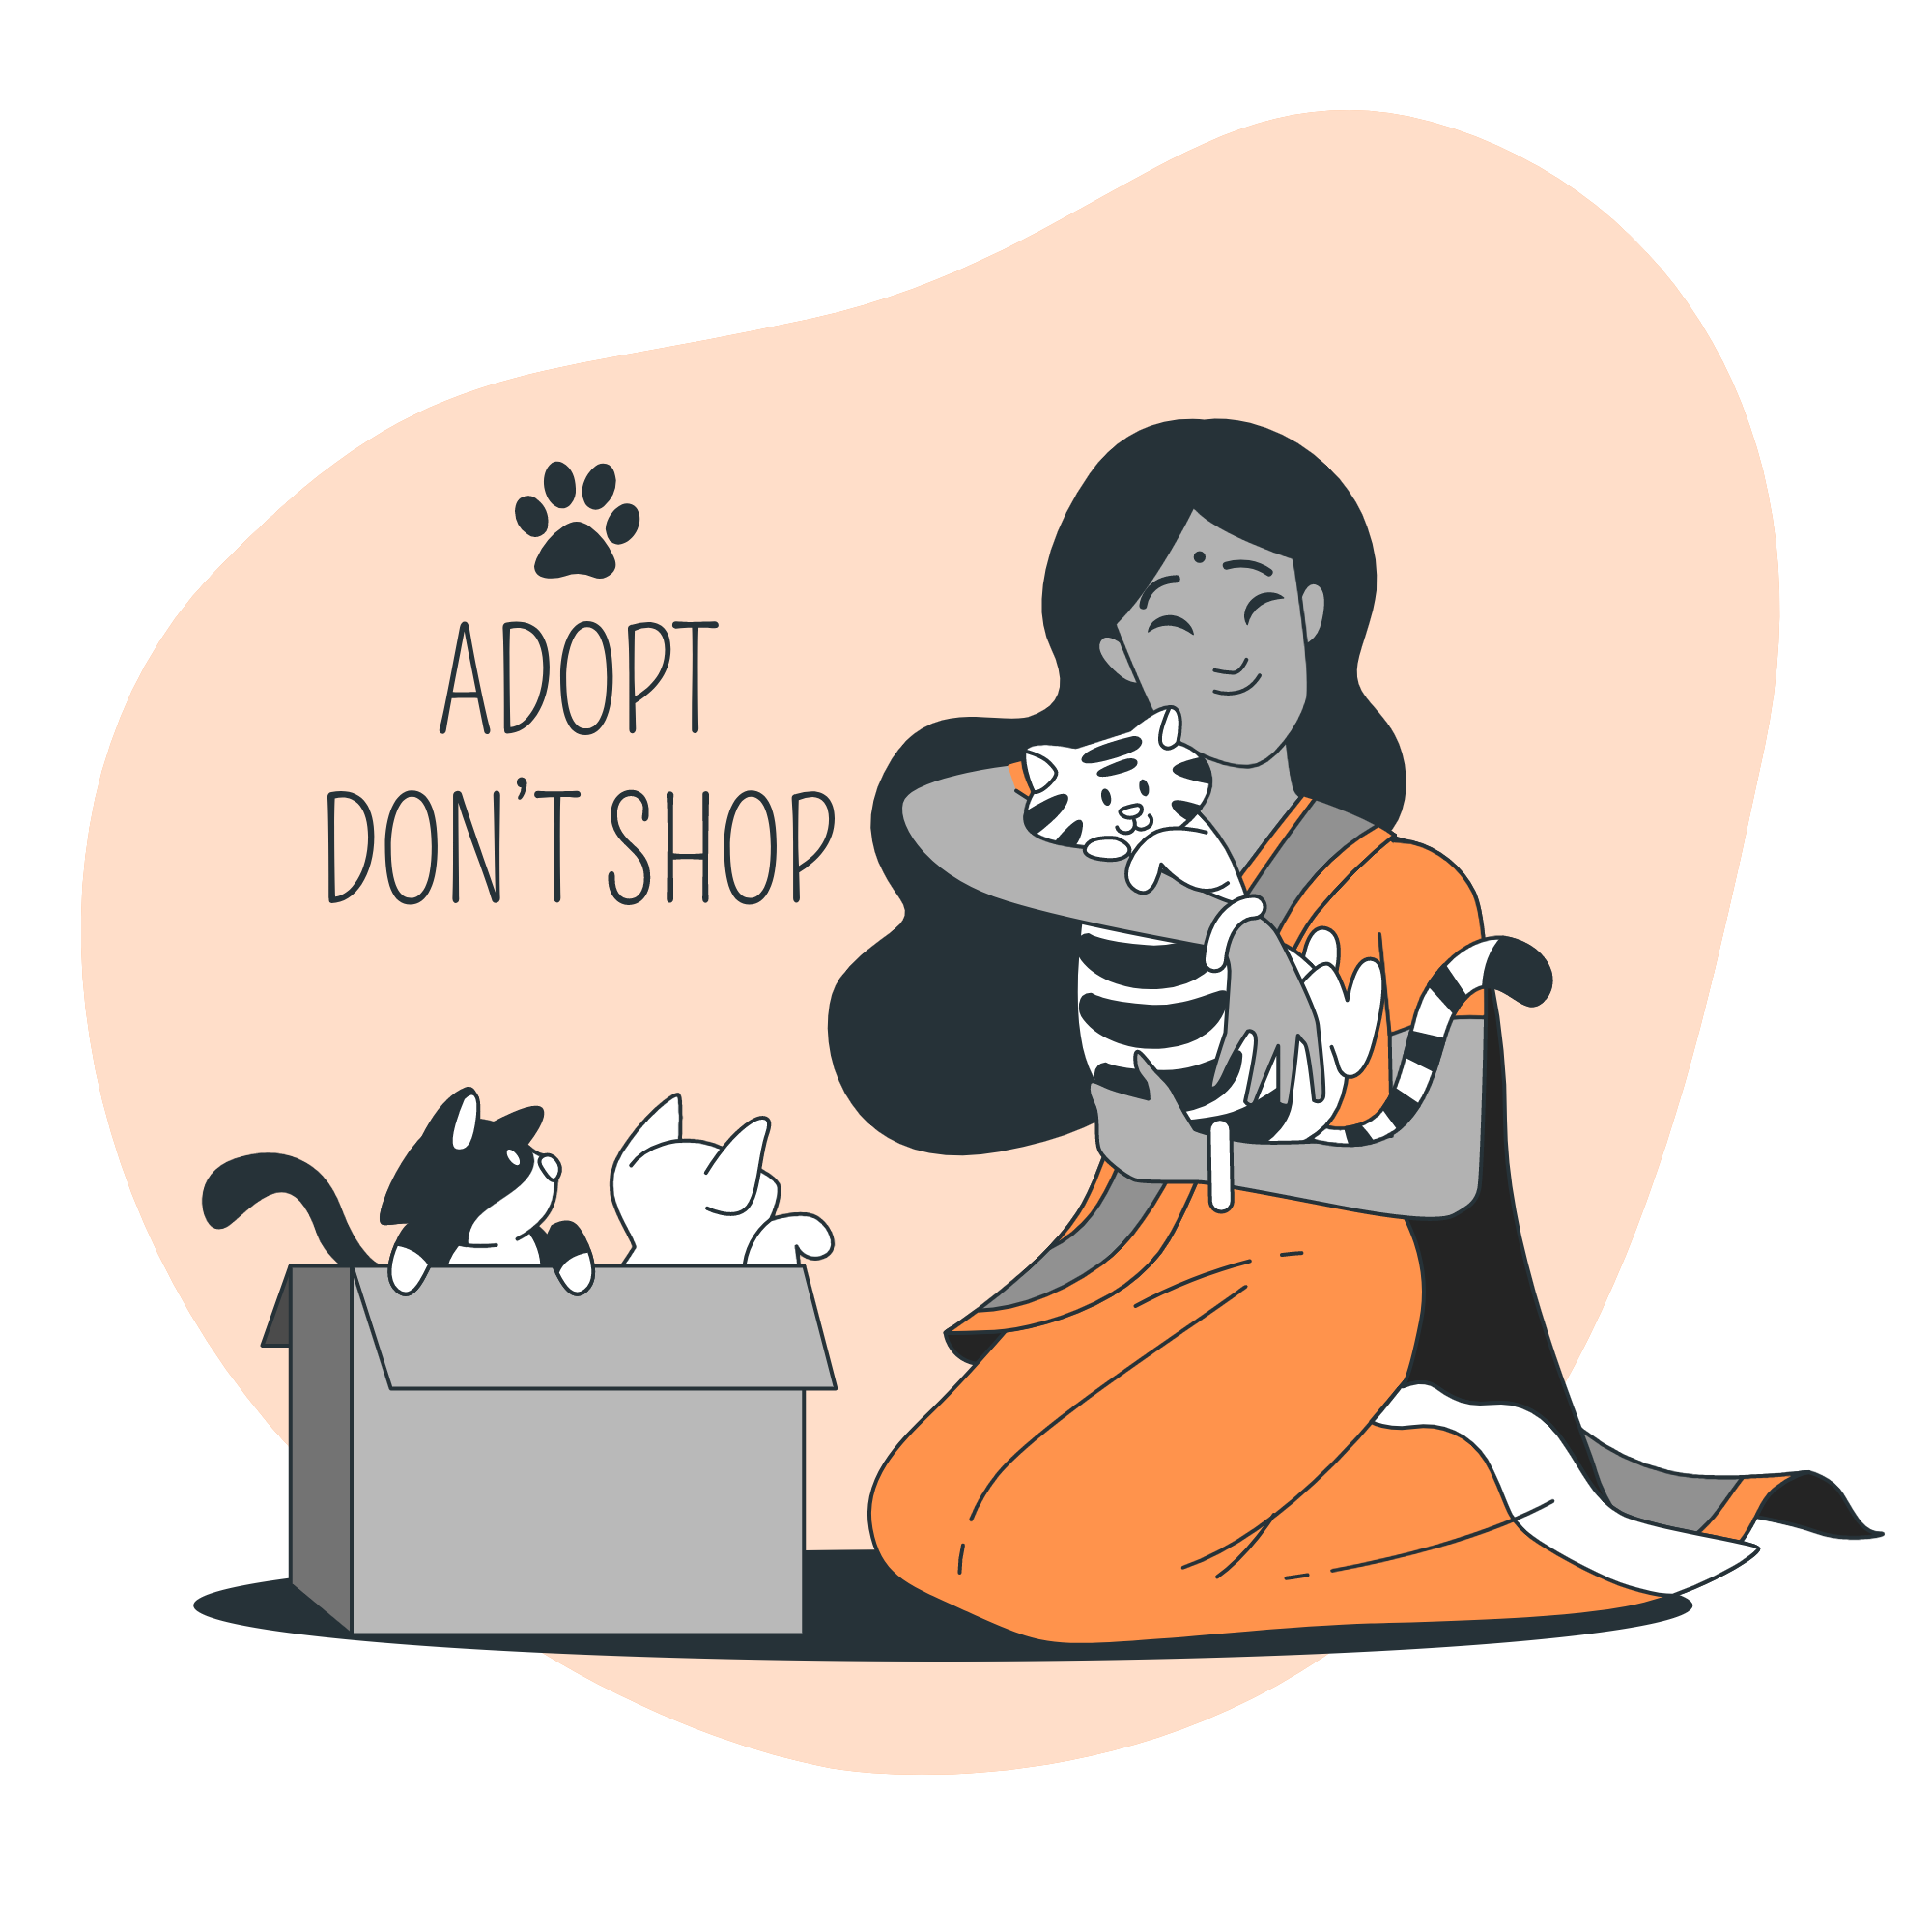 Reapet supports pet adoption and animal welfare